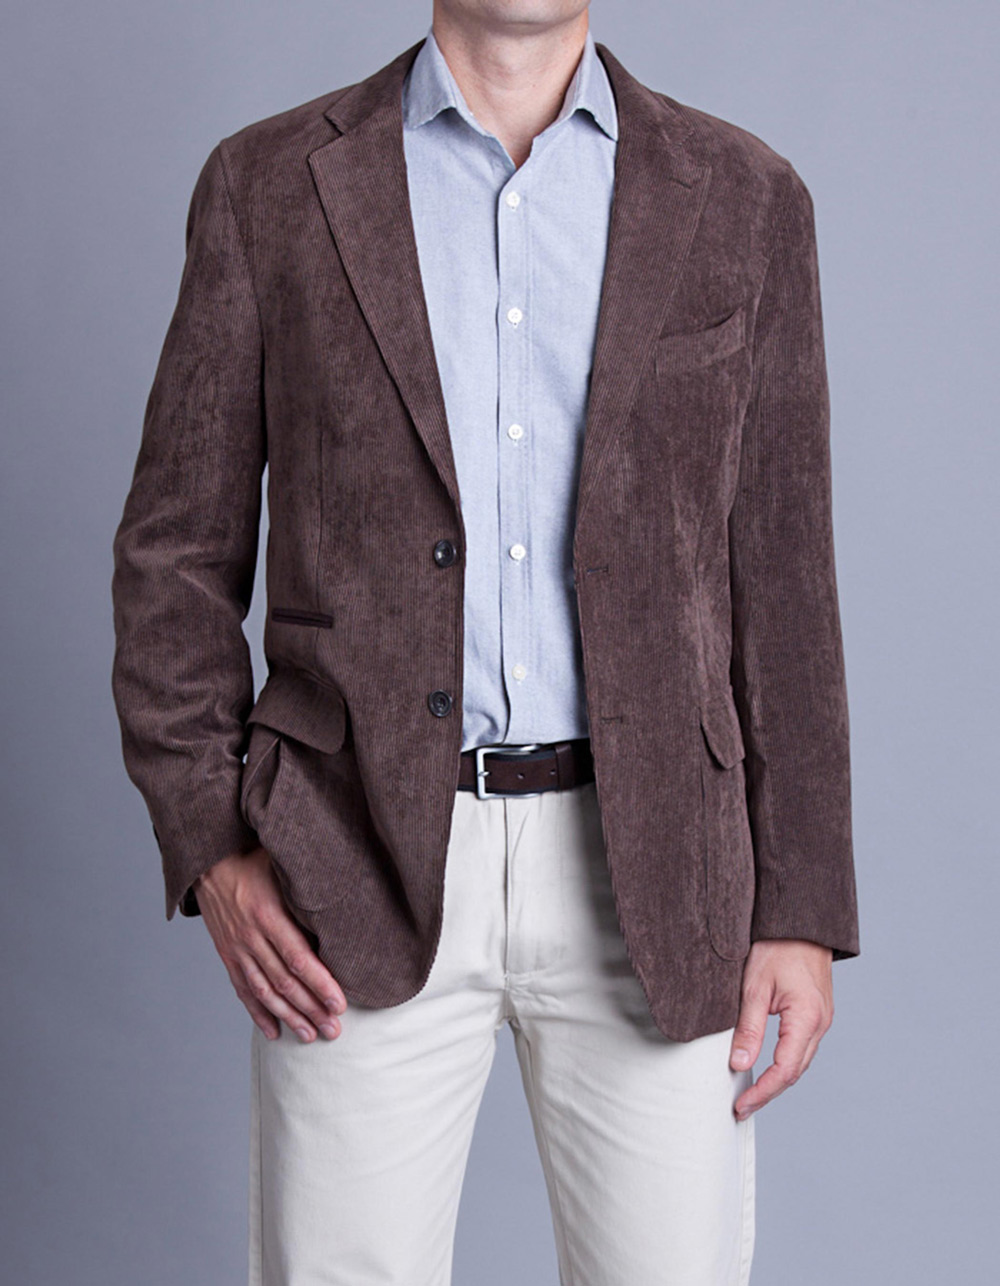 Corduroy jacket with elbow pads